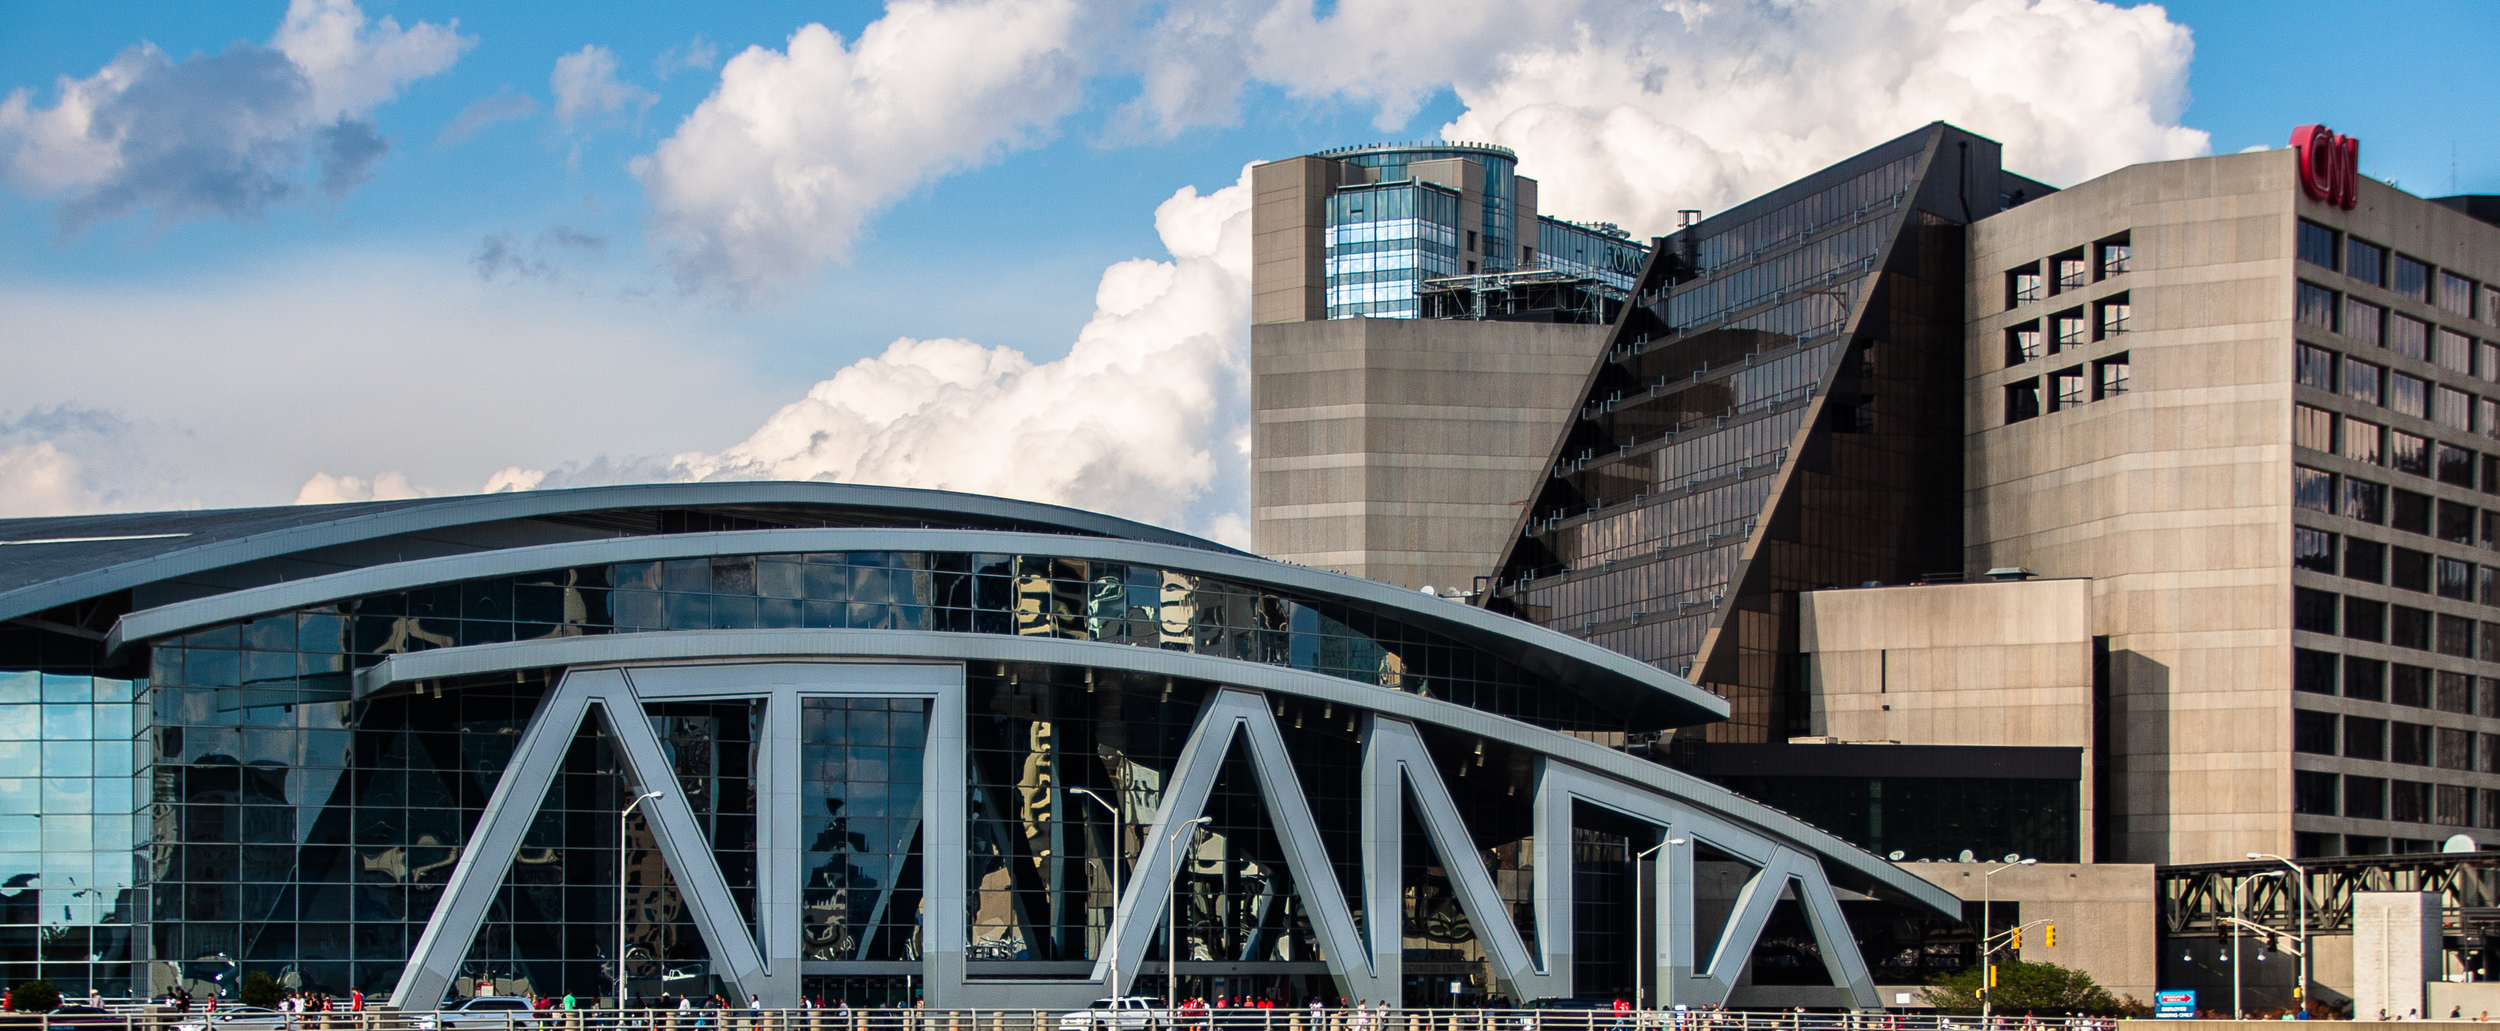 """I saw this in a time-lapse video I saw on Vimeo. When walking around I was happy to discovery it. The """"ATLANTA"""" that you see is the entrance to the Philips Arena."""